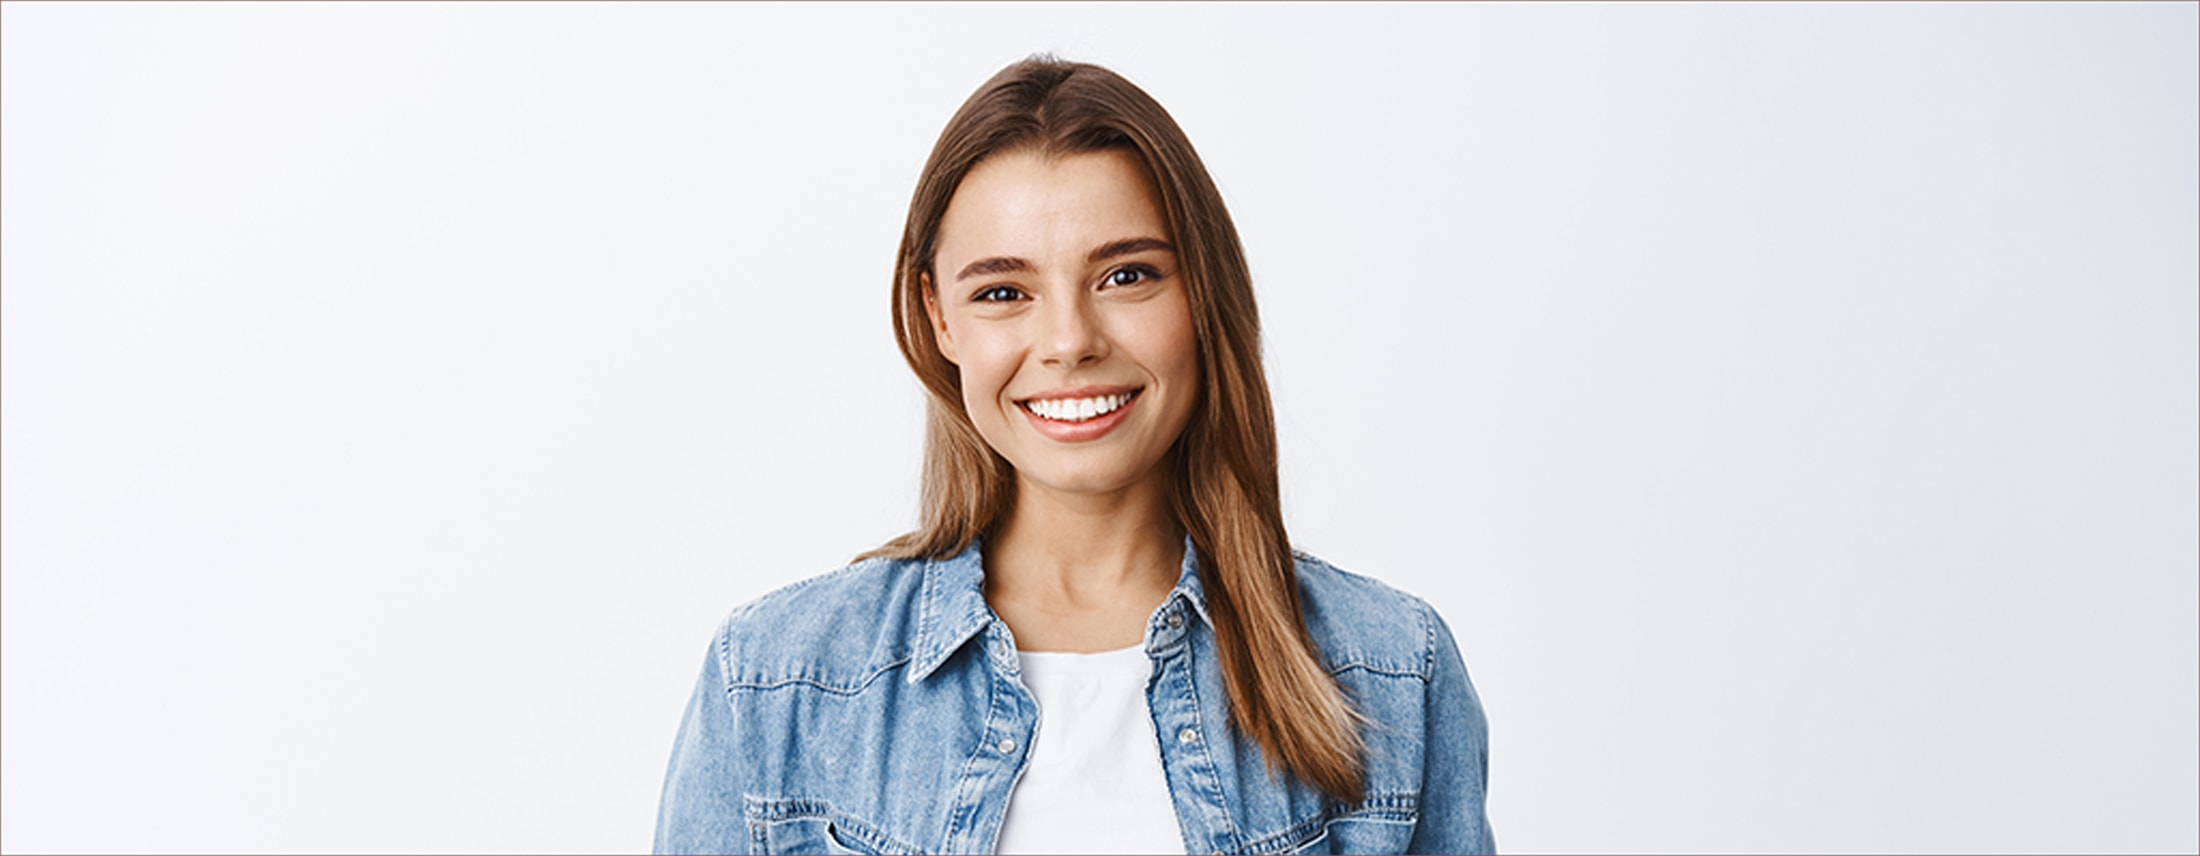 Cosmetic Dentistry - Dr. George Andrews, DDS